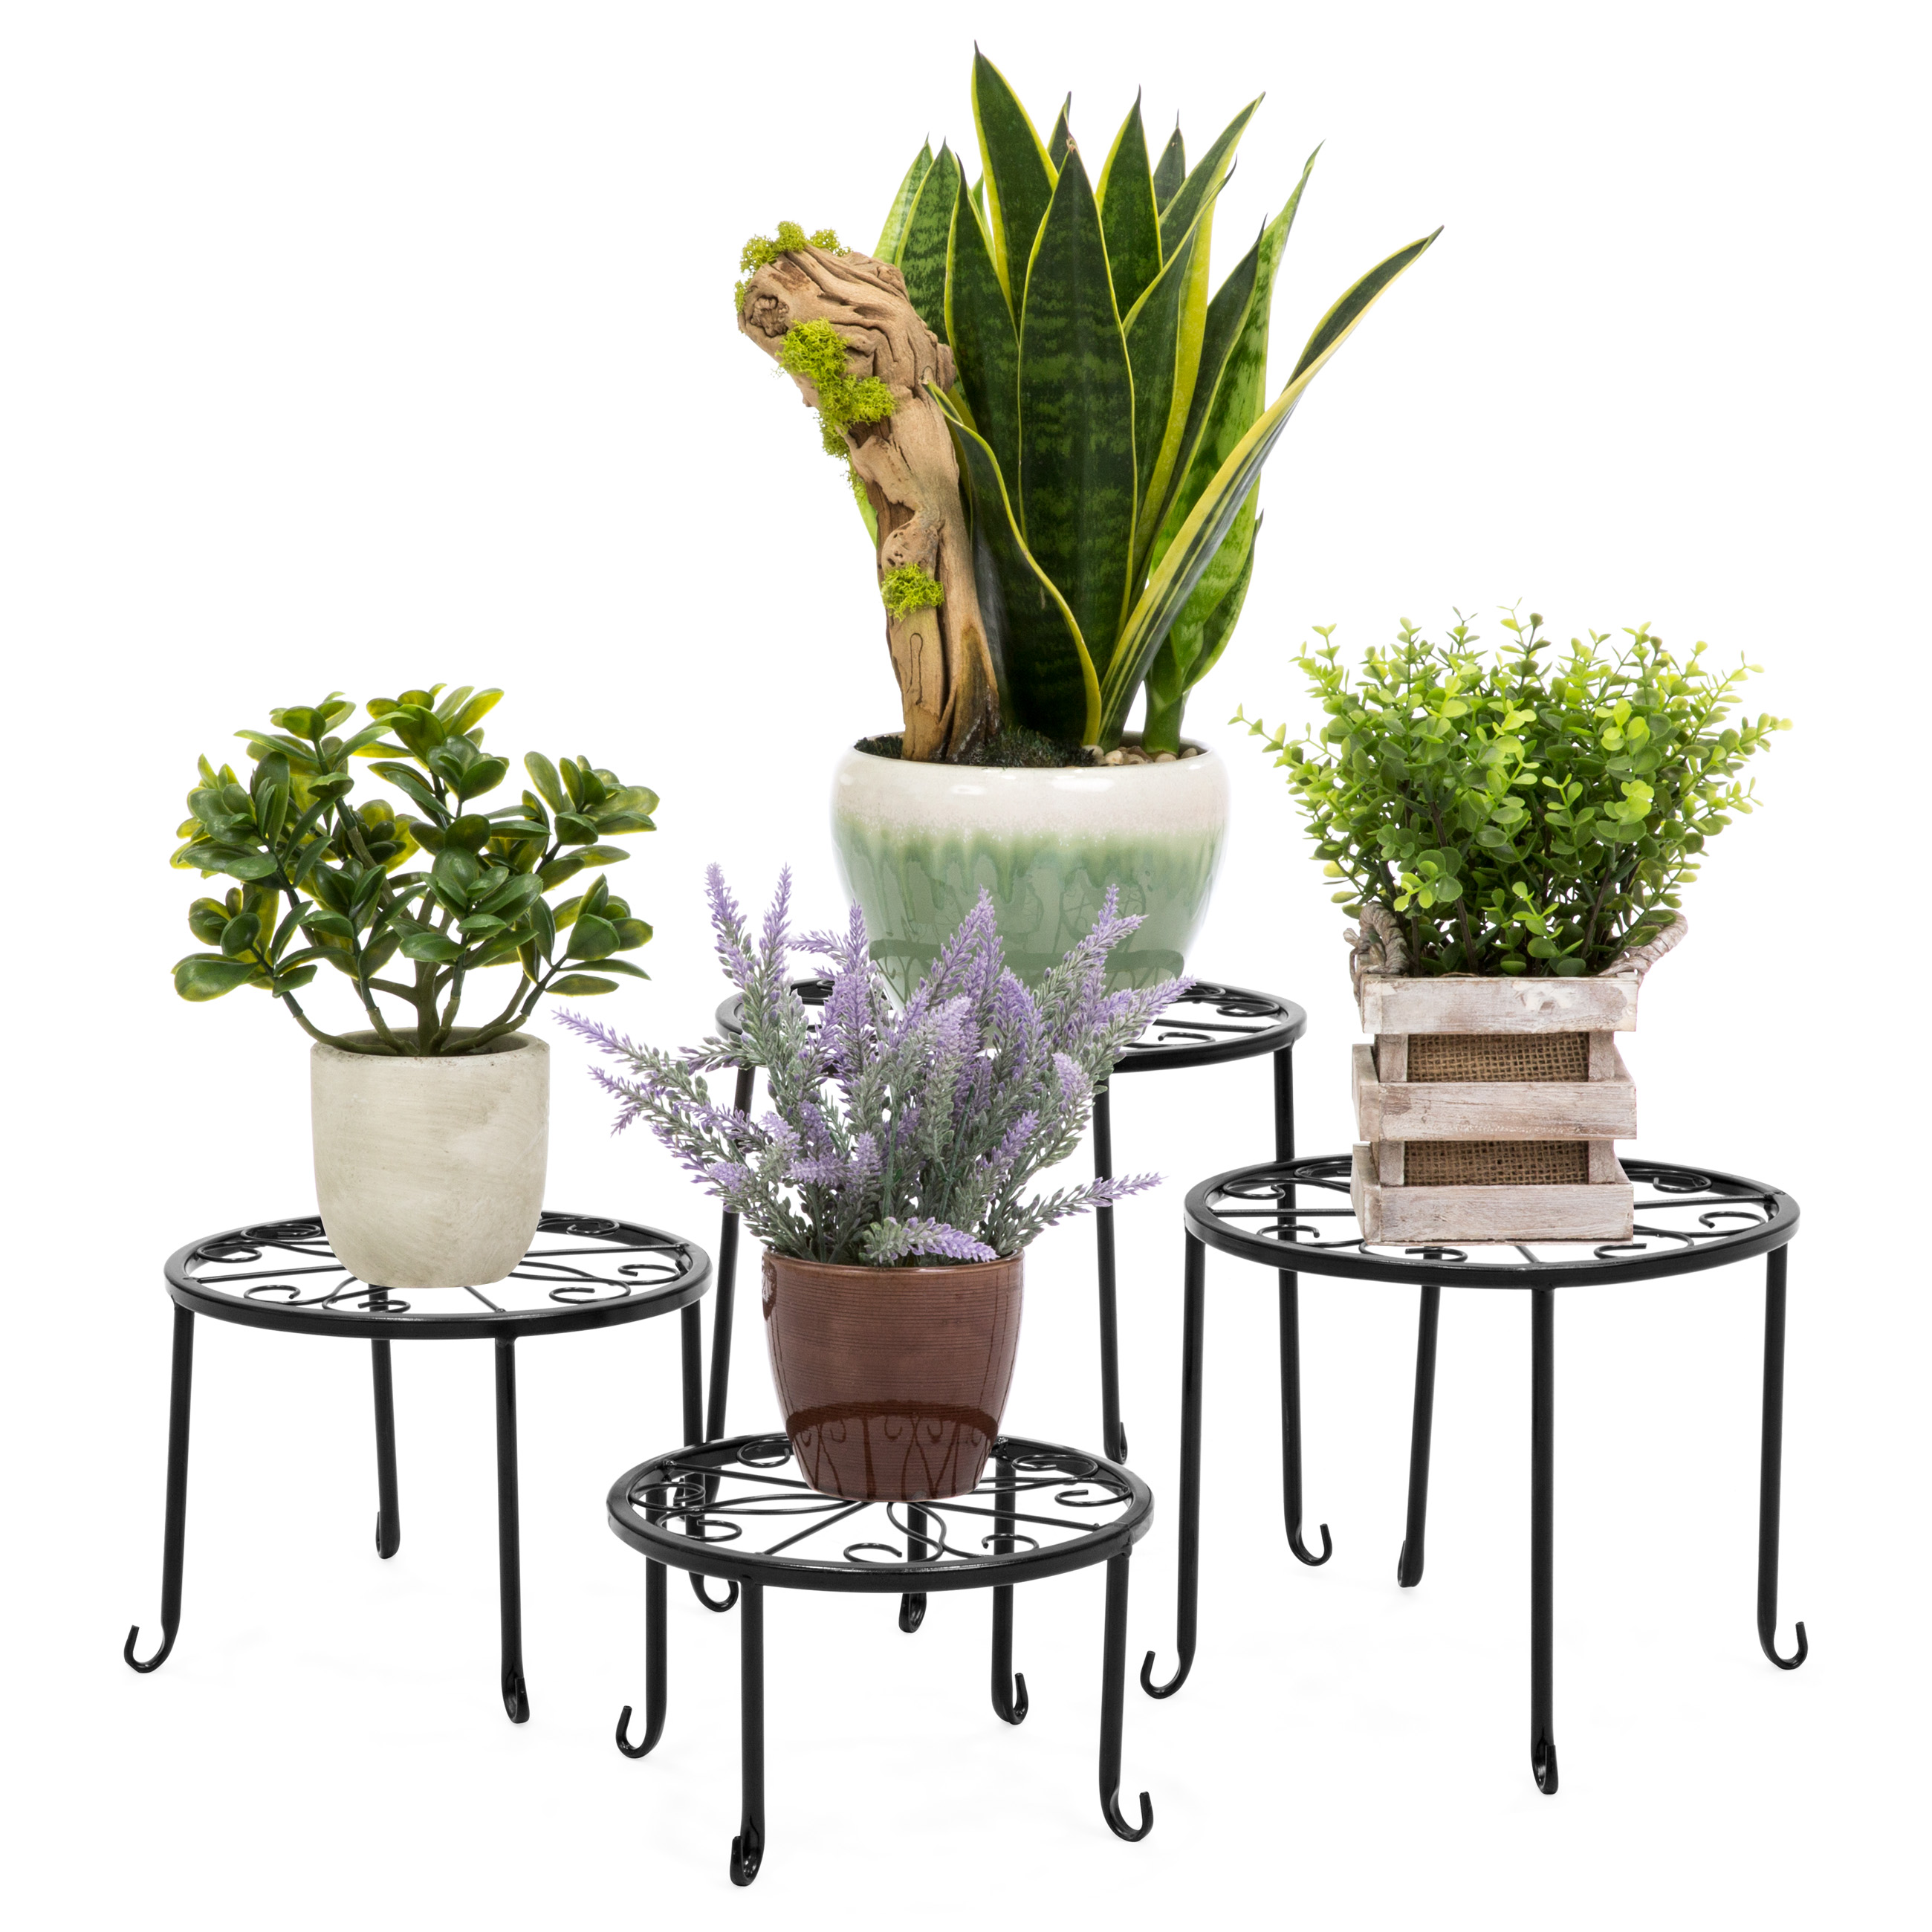 Black Best Choice Products 32in 2-Tier Indoor Outdoor Multi-Purpose Metal Flower Plant Pot Display Tray Shelf Stand